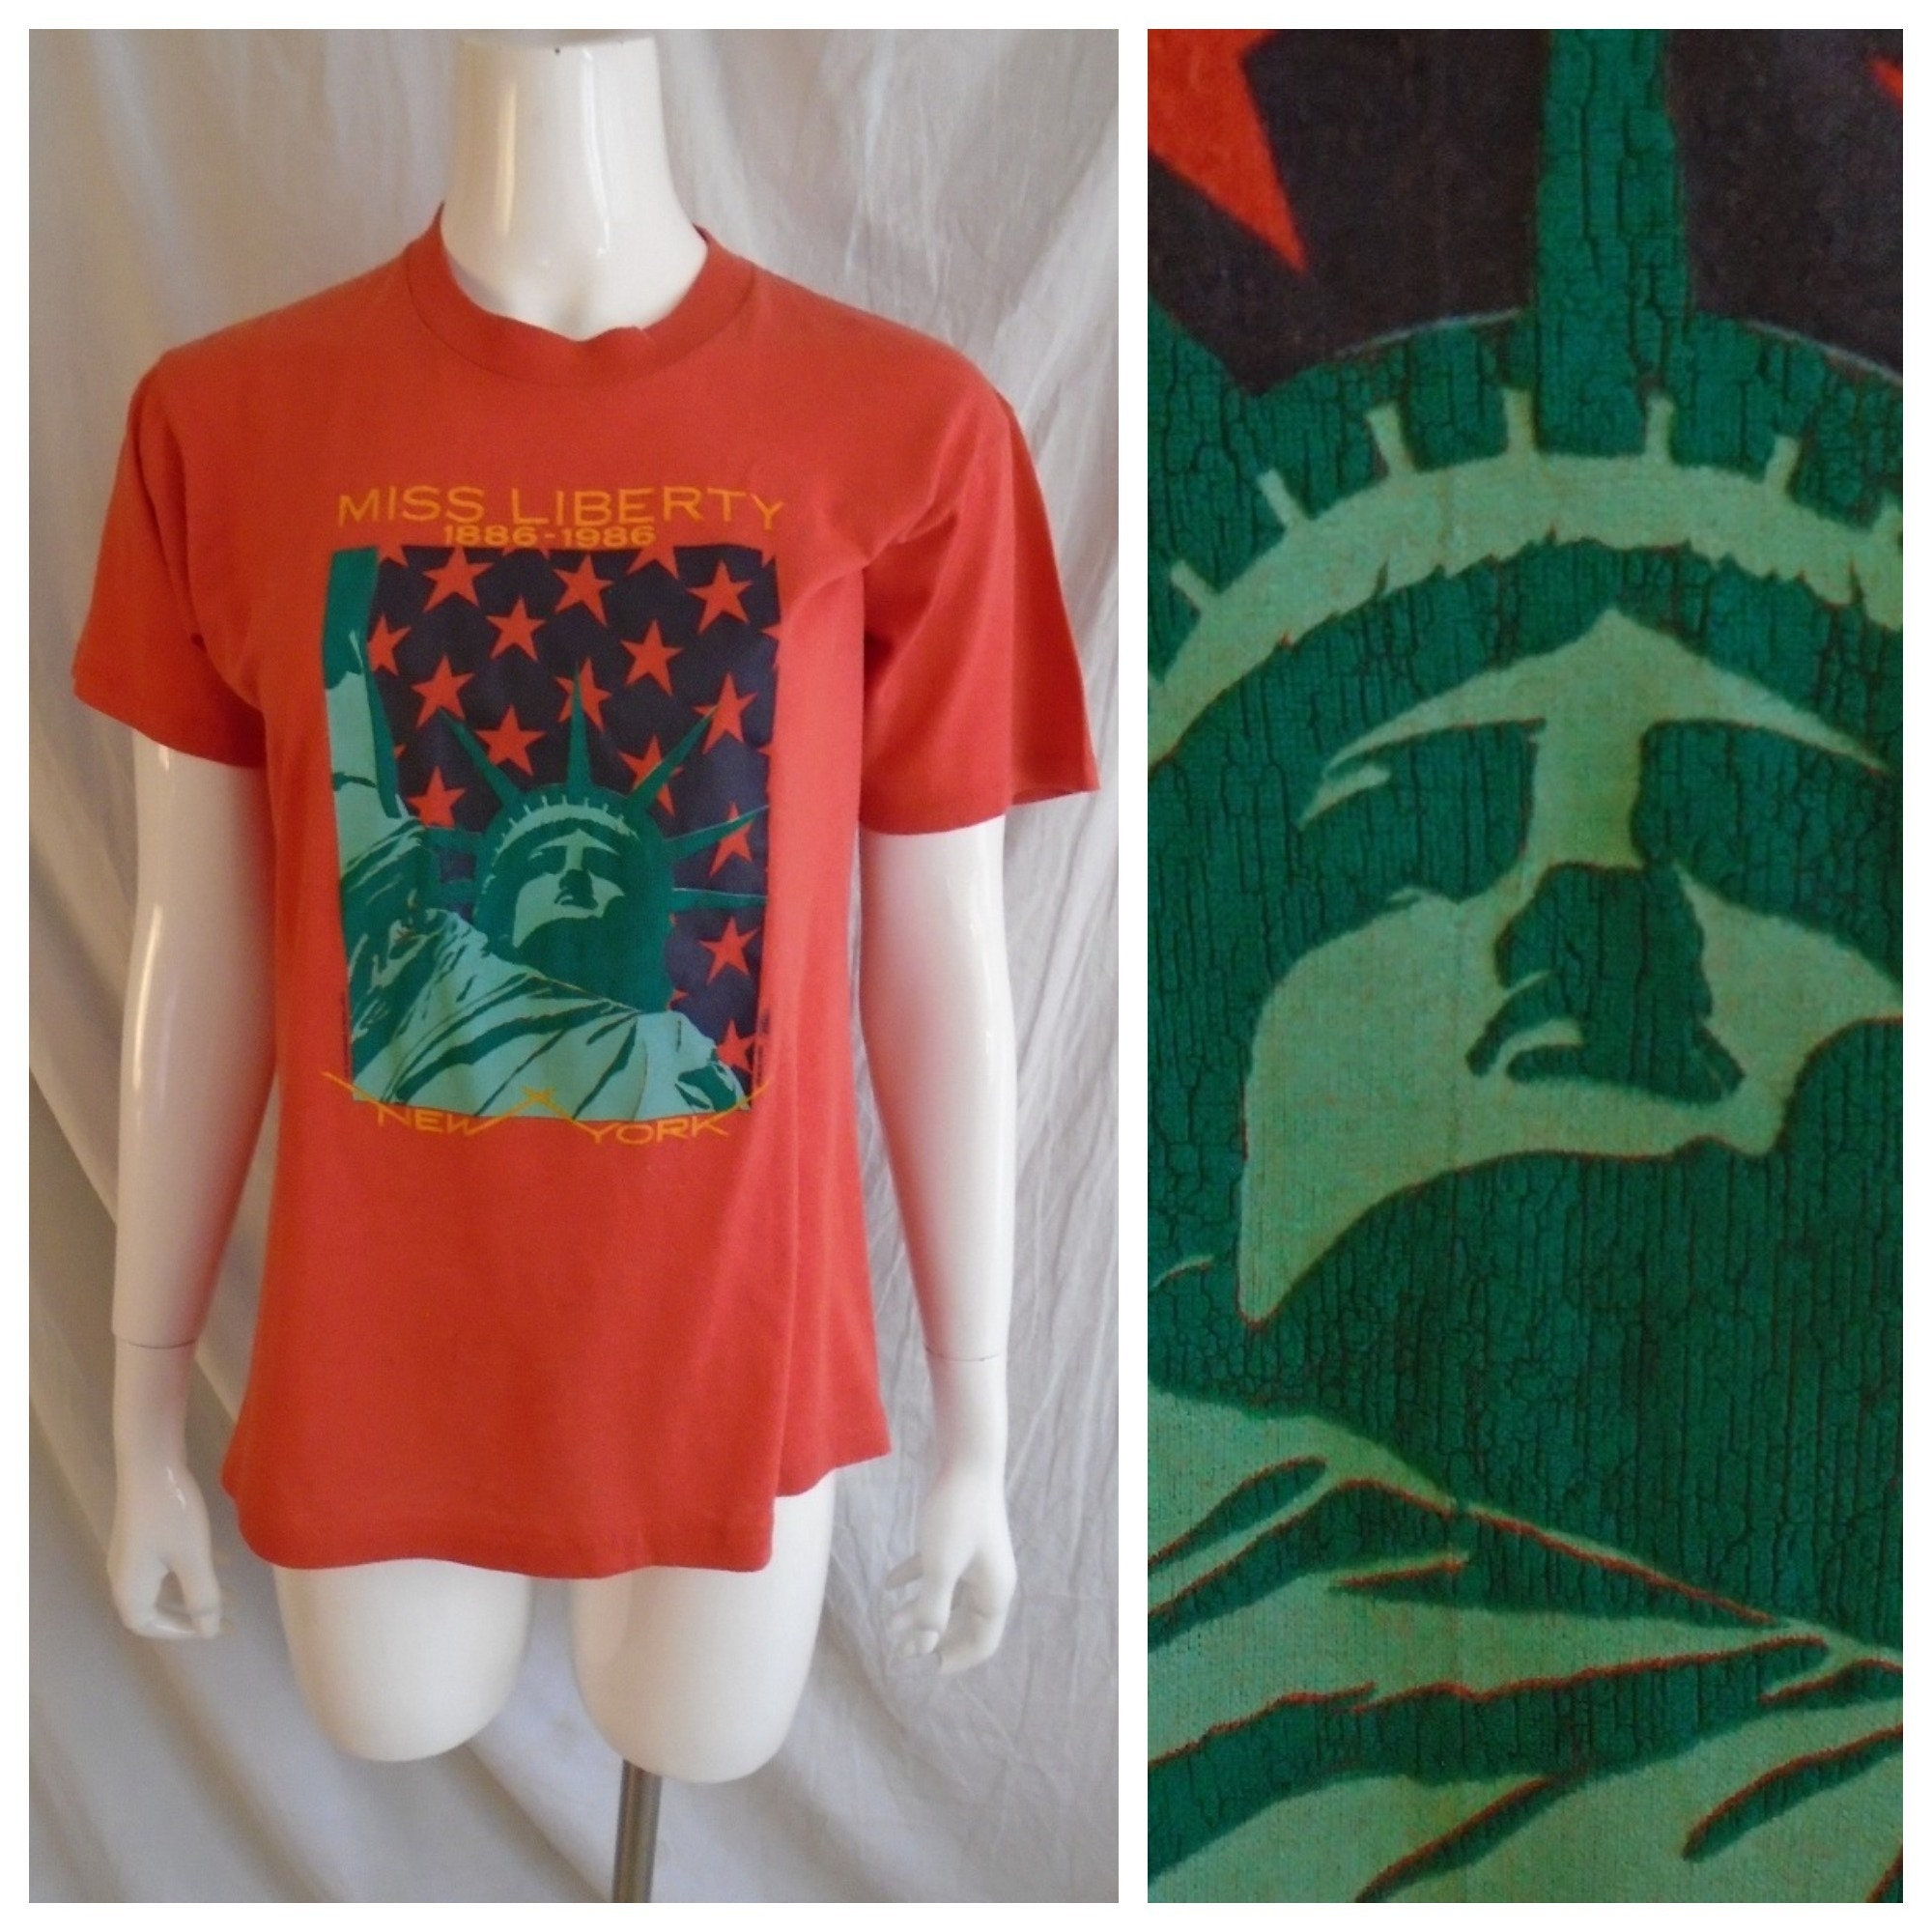 80s Tops, Shirts, T-shirts, Blouse   90s T-shirts Vintage 1980S T Shirt 100Th Anniversary Of Statue Liberty 1886-1986 Unisex Mans Small Womens Large $28.00 AT vintagedancer.com